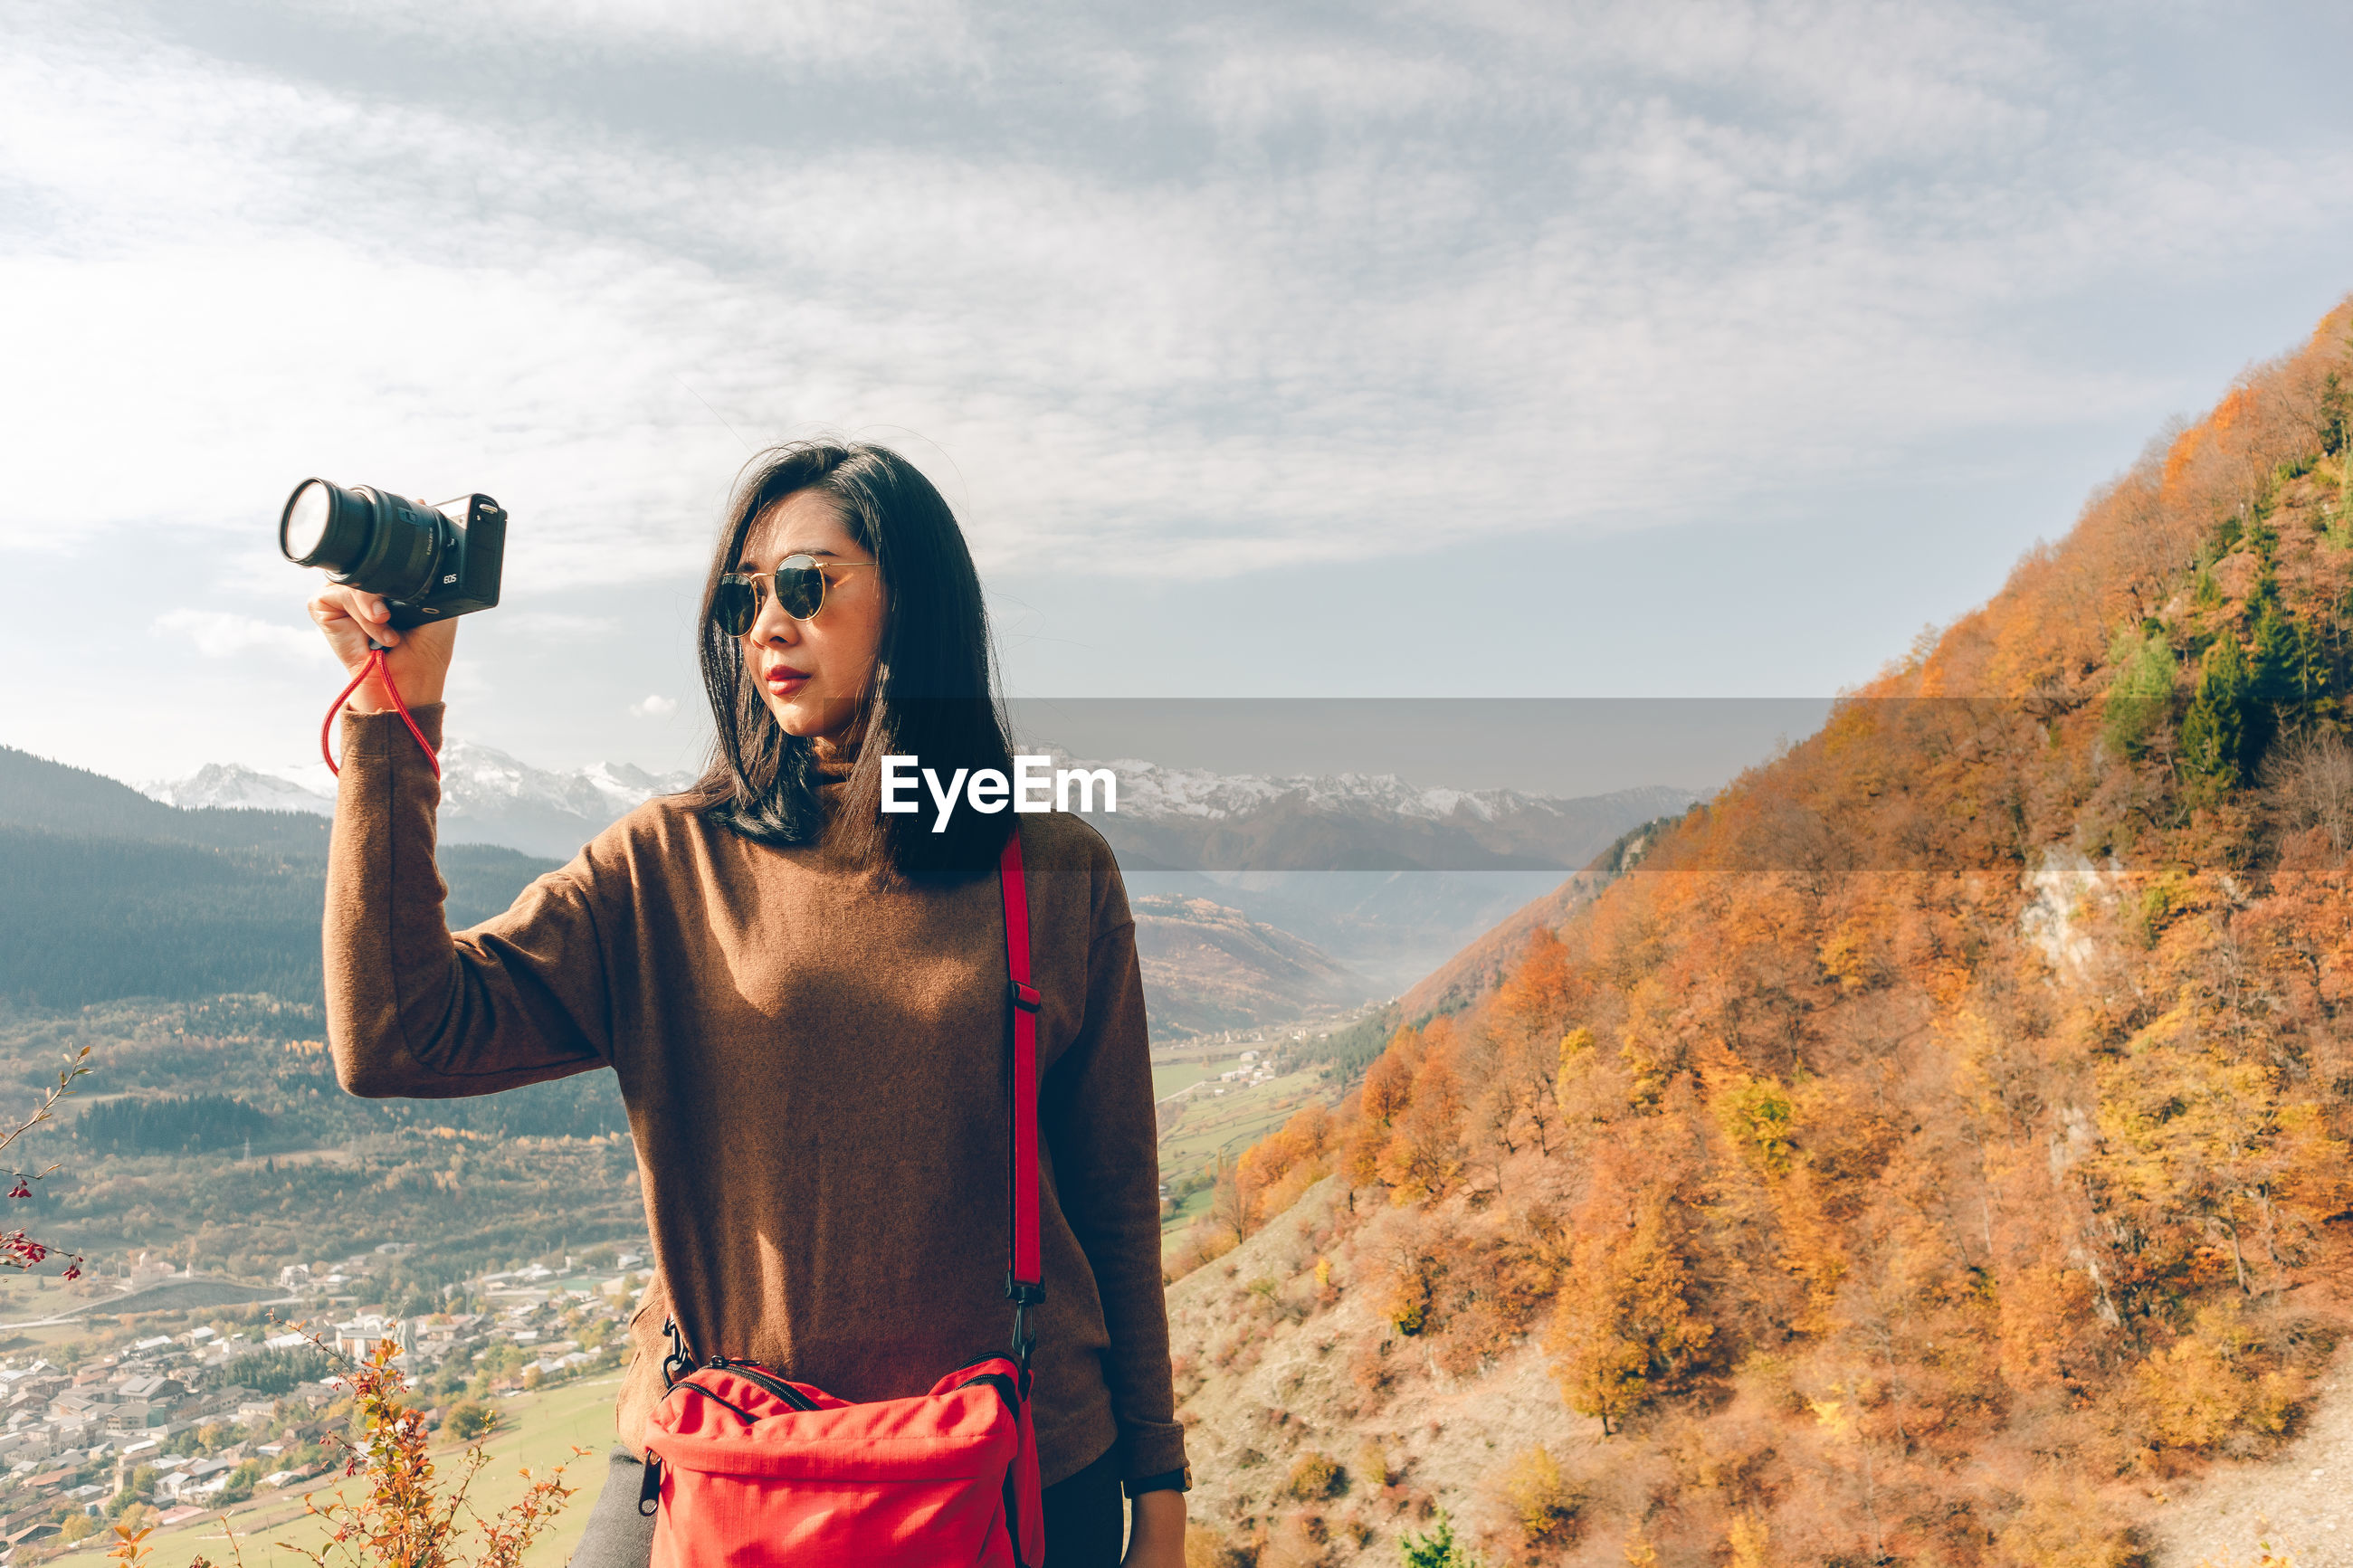 Woman photographing at camera against sky